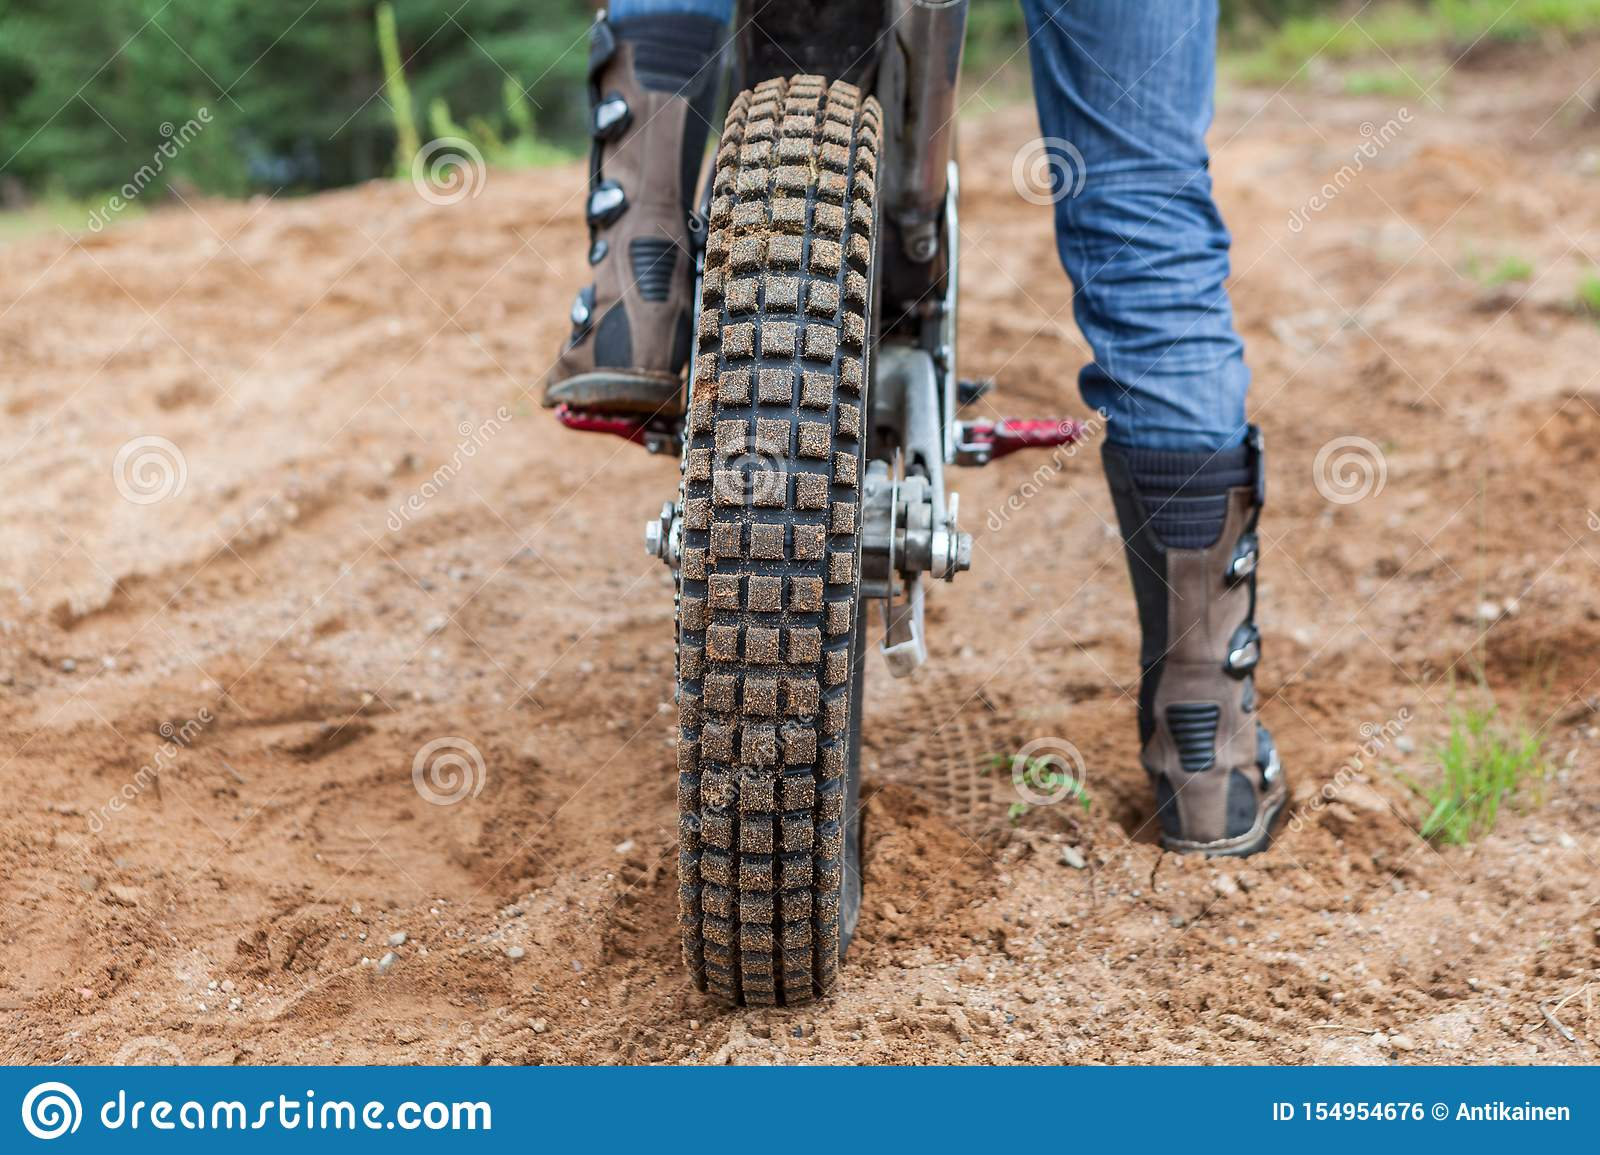 Motorcycle rider has a ride in sand pit, rear view of bike tire and men boots